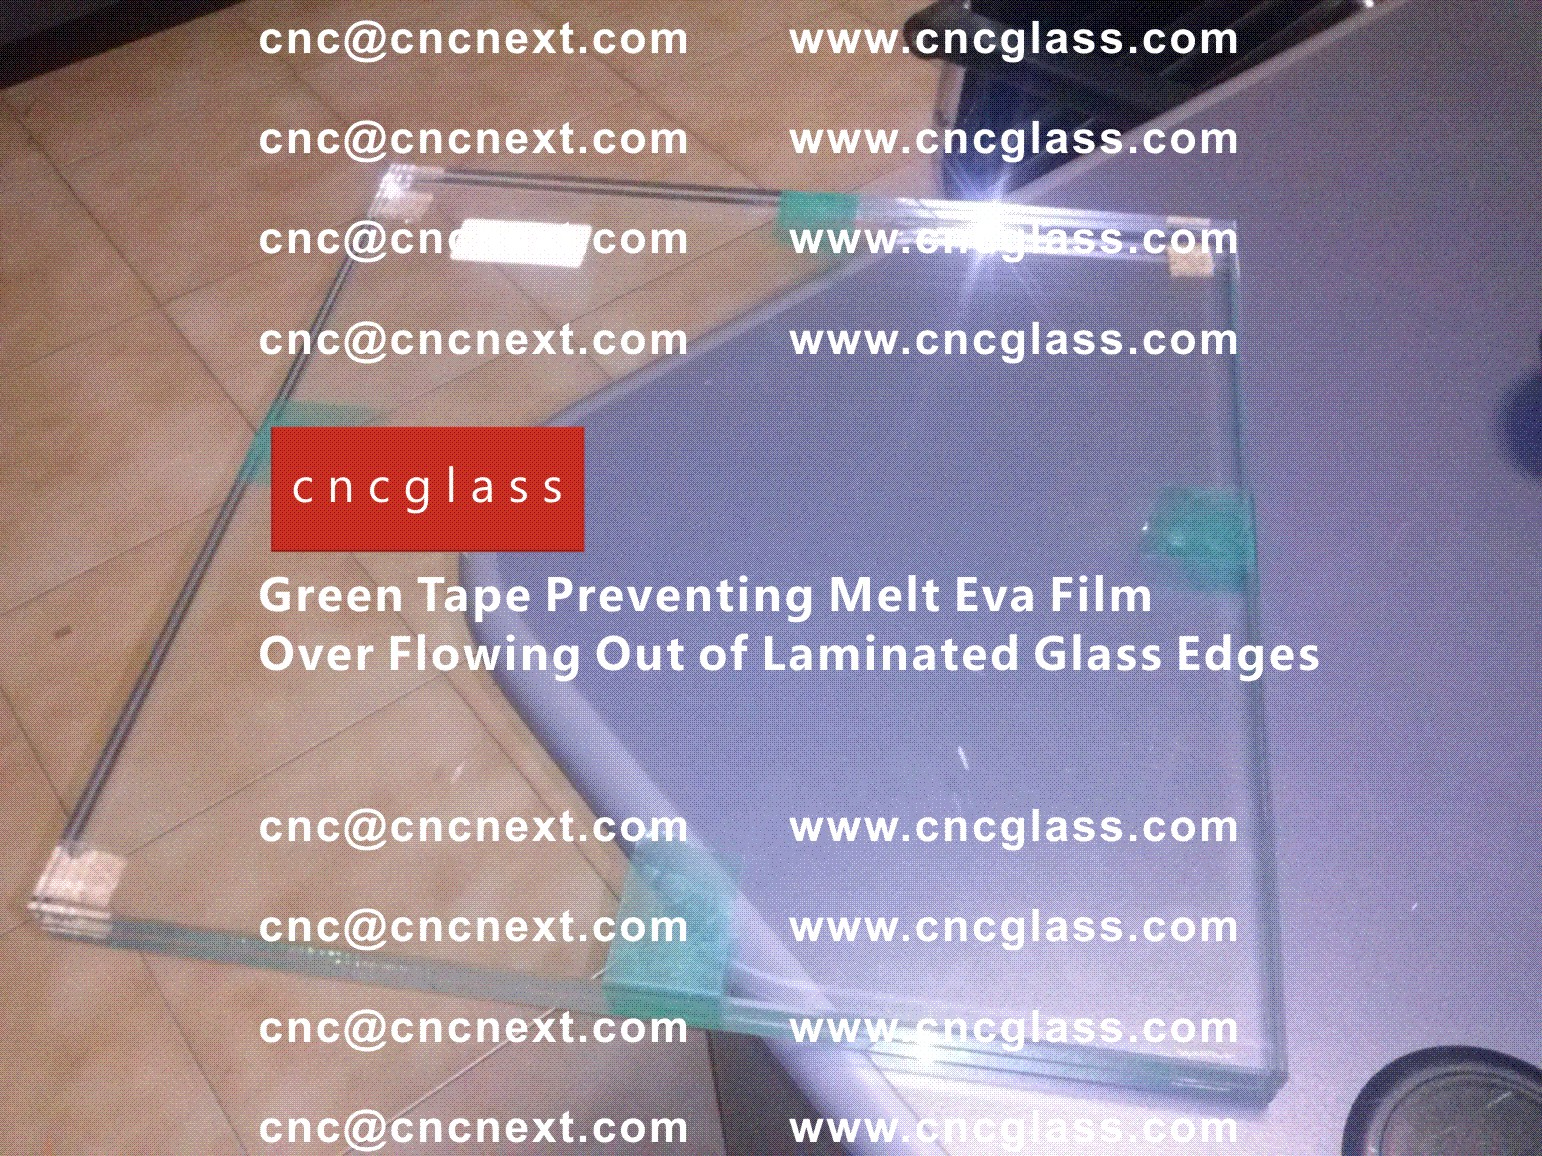 008 Green Tape Preventing Melt Eva Film Over Flowing Out of Laminated Glass Edges